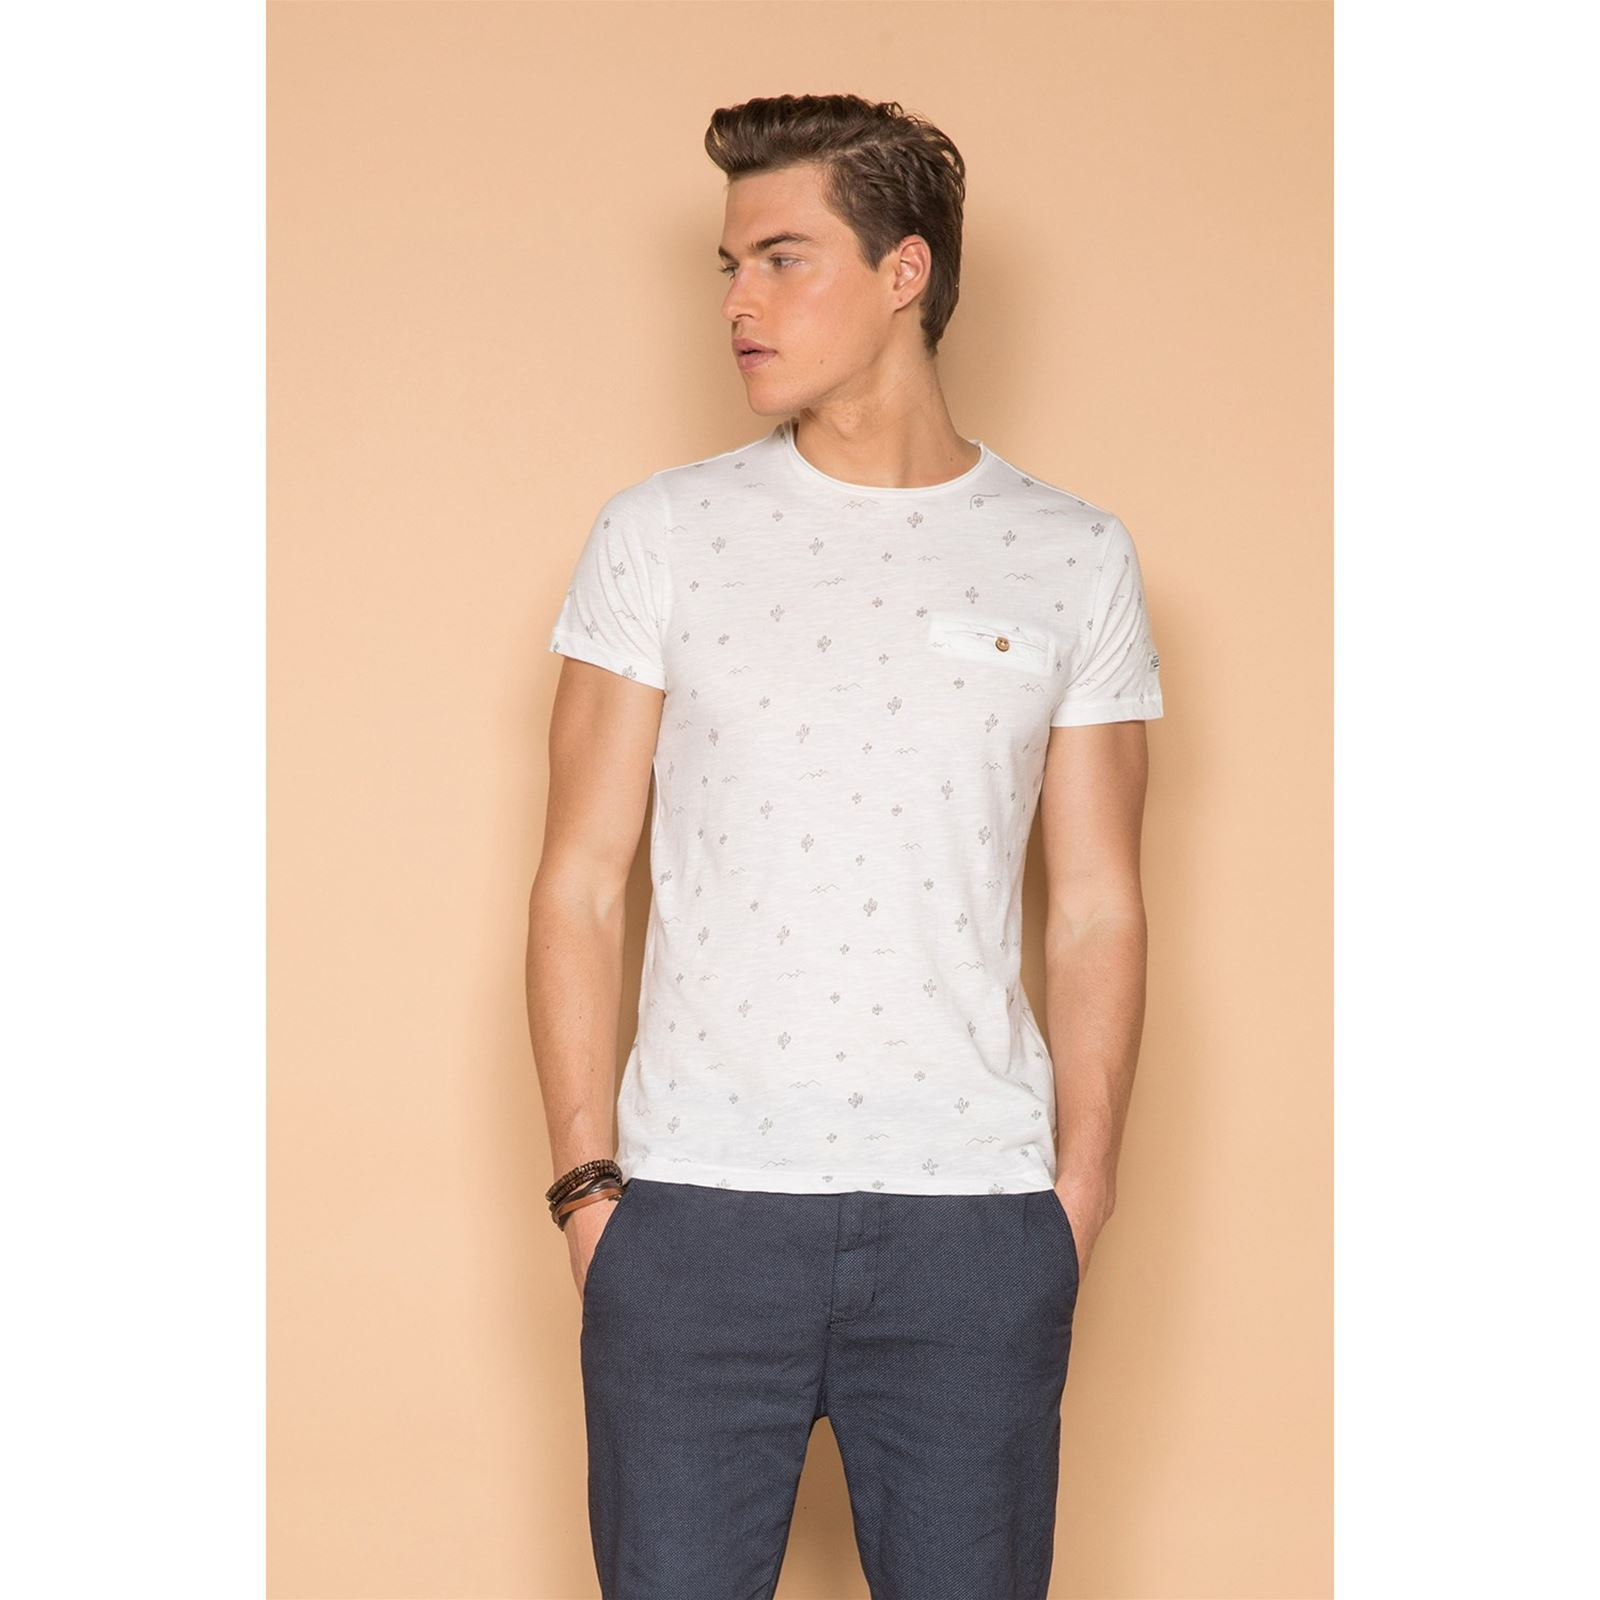 Blanc MexicoT V Courtes Deeluxe Homme shirt Manches kiZuOPXT